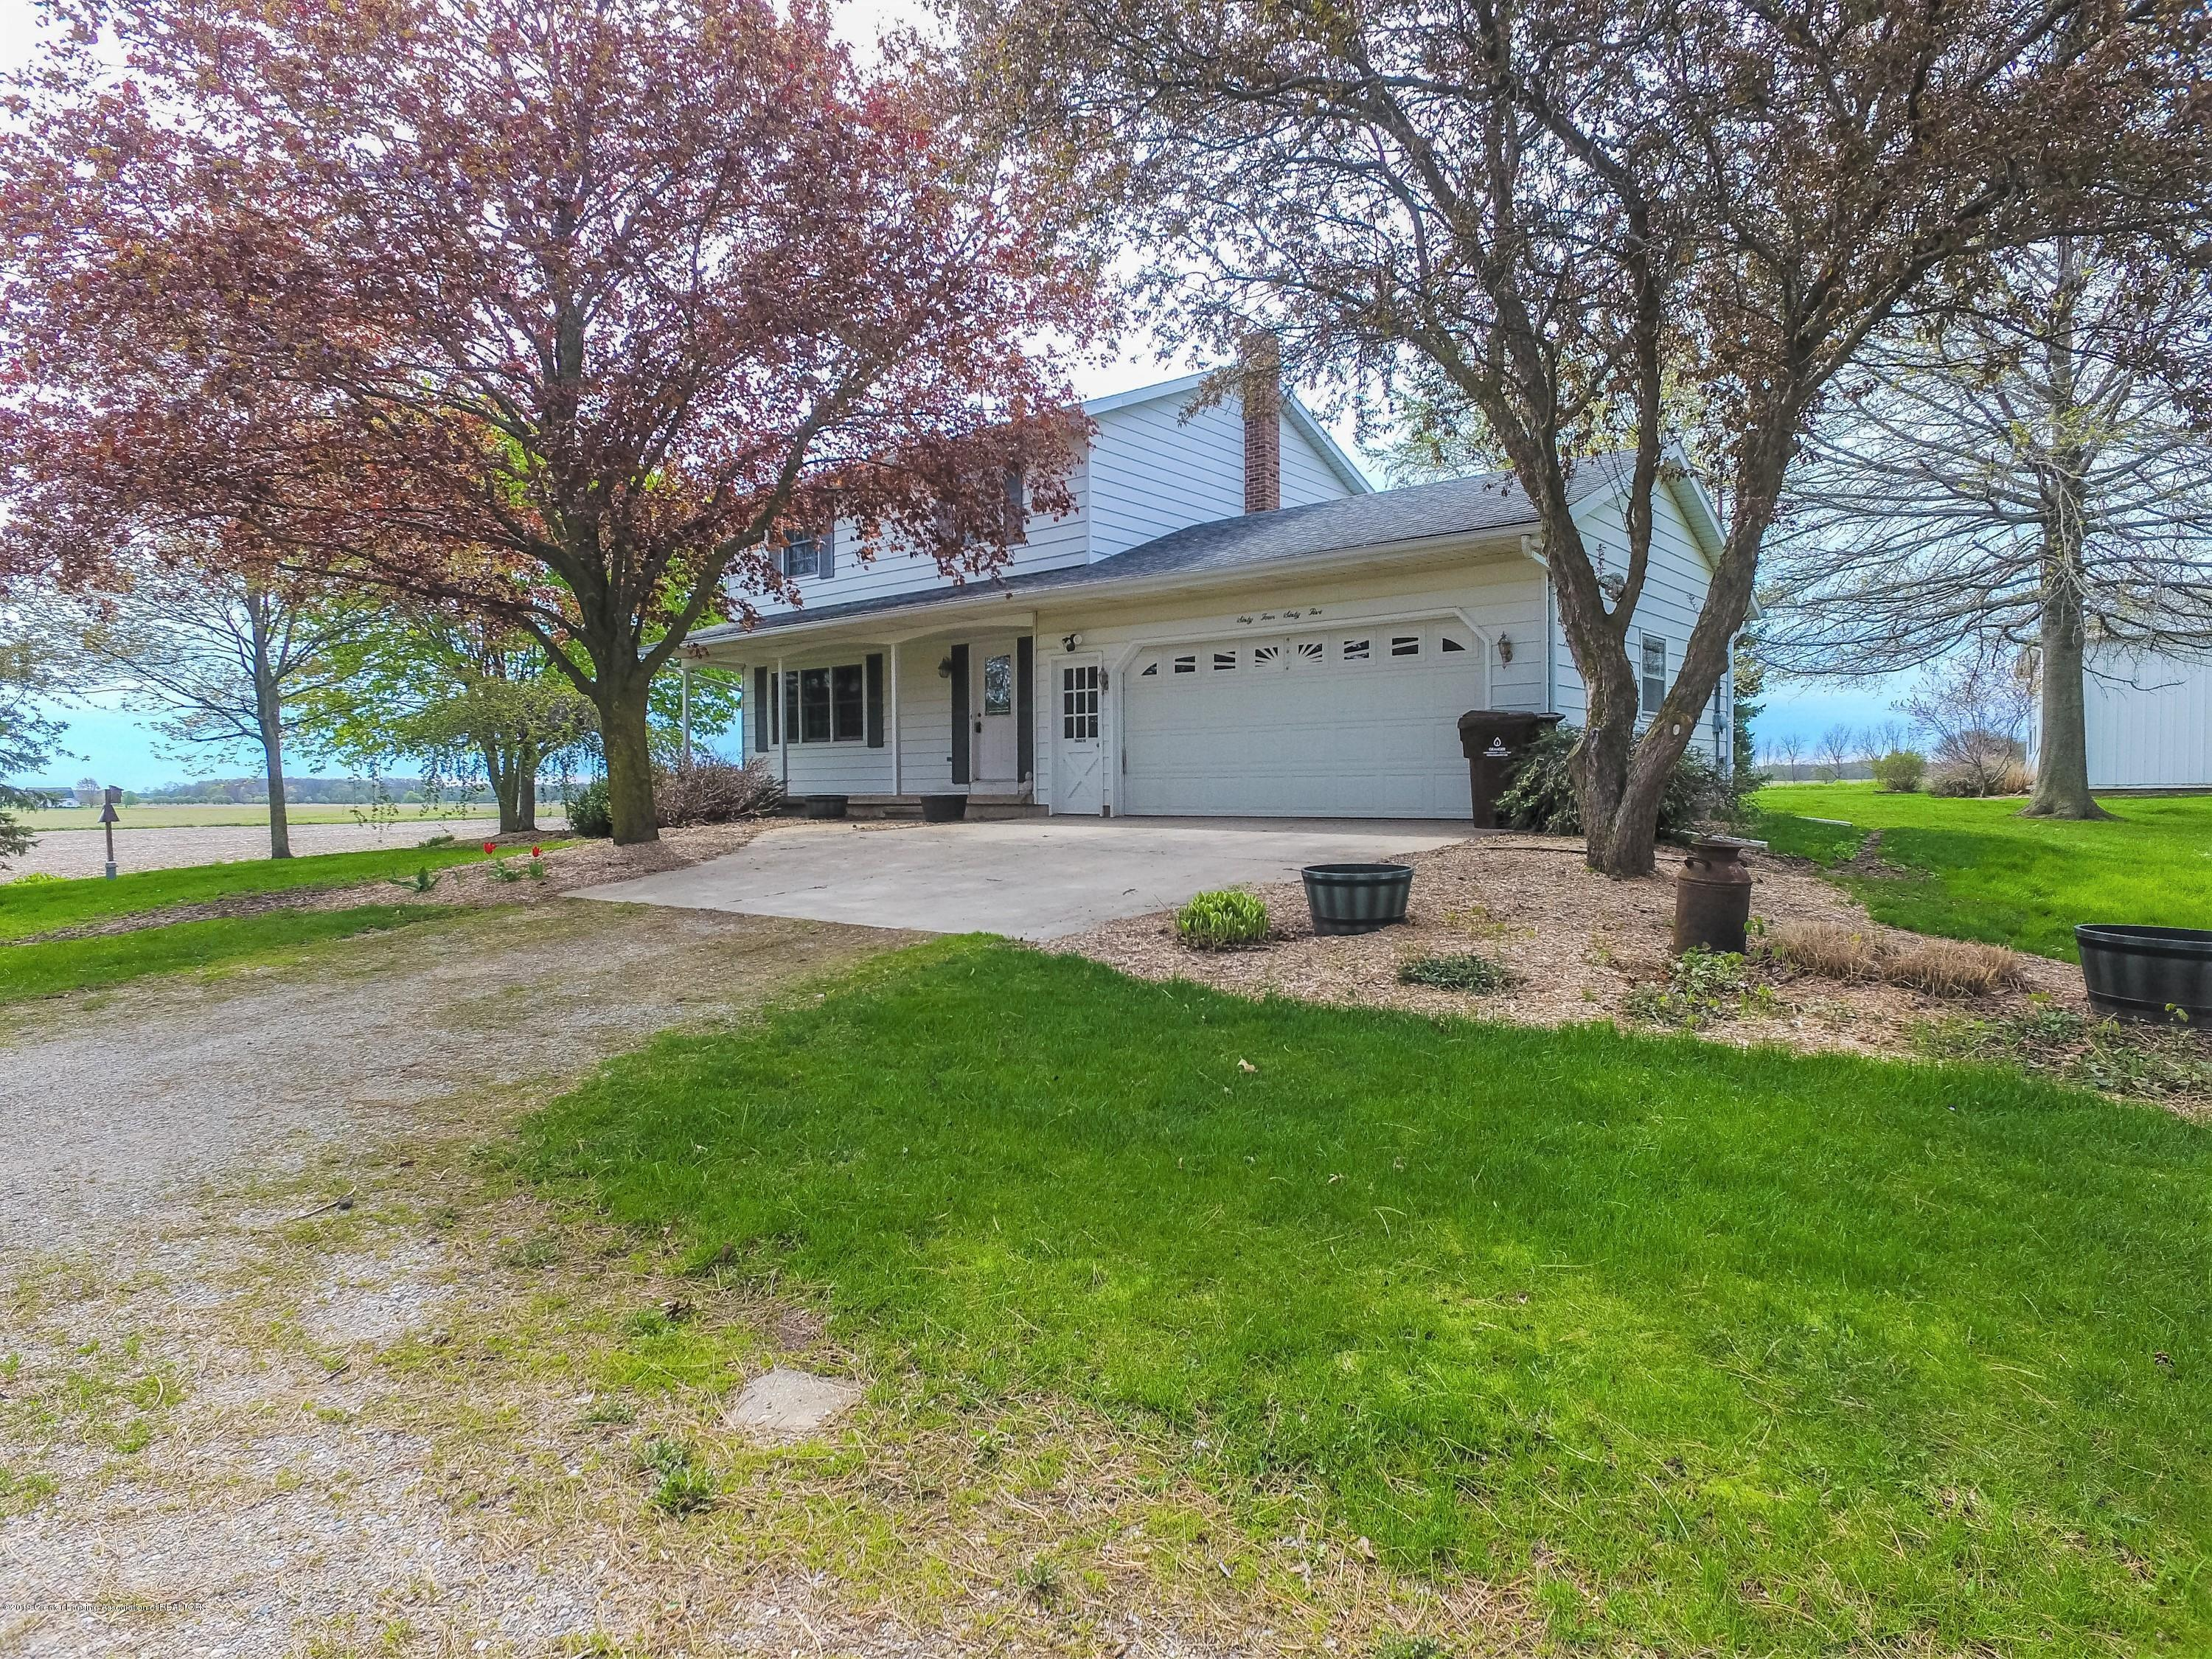 6465 W Maple Rapids Rd - Front - 2